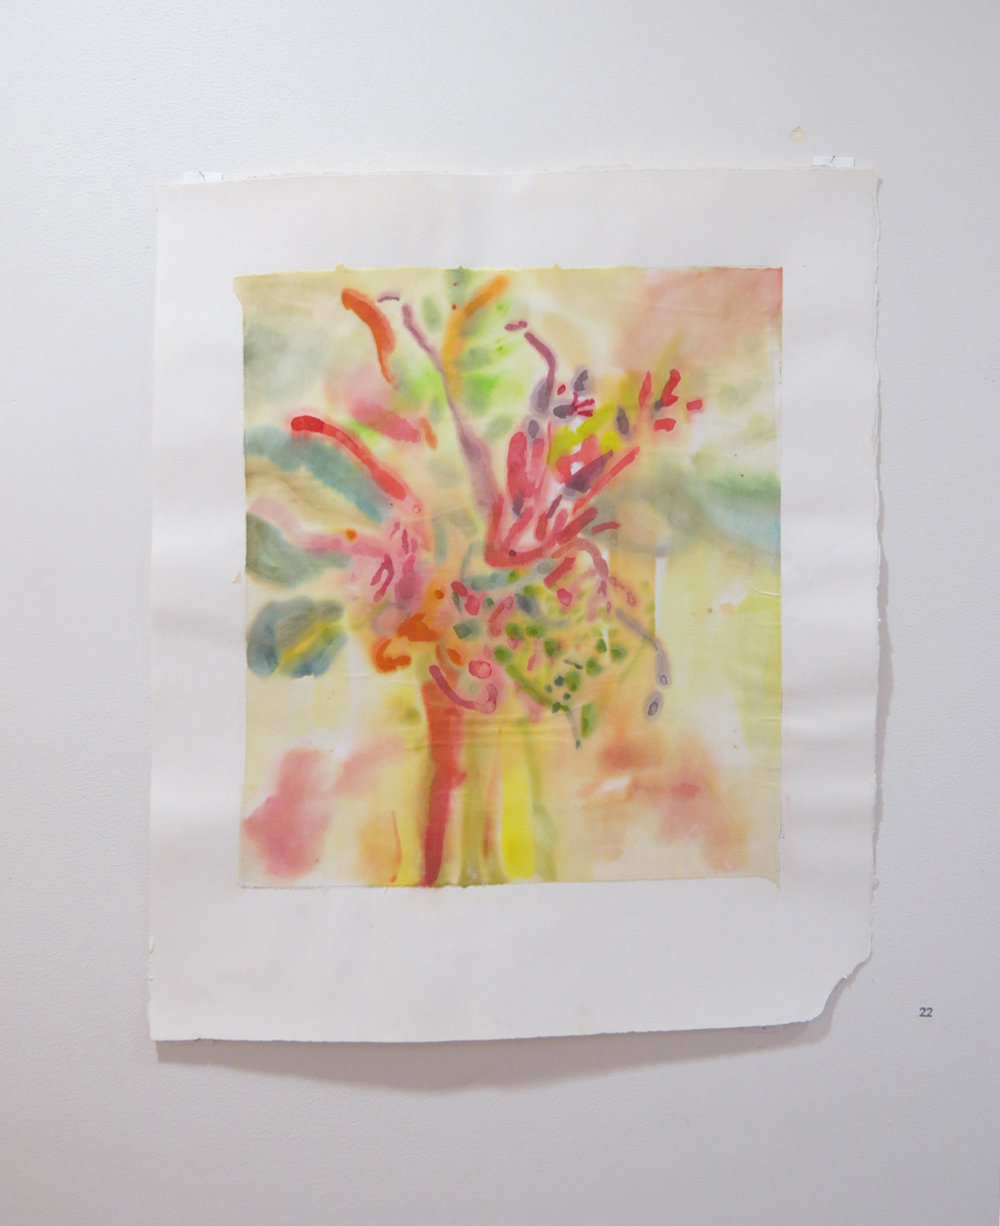 22. Jo Darvall, 'Floating Water Work 8', 2015, Watercolour on rice paper, 67 x 58cm, $1,800